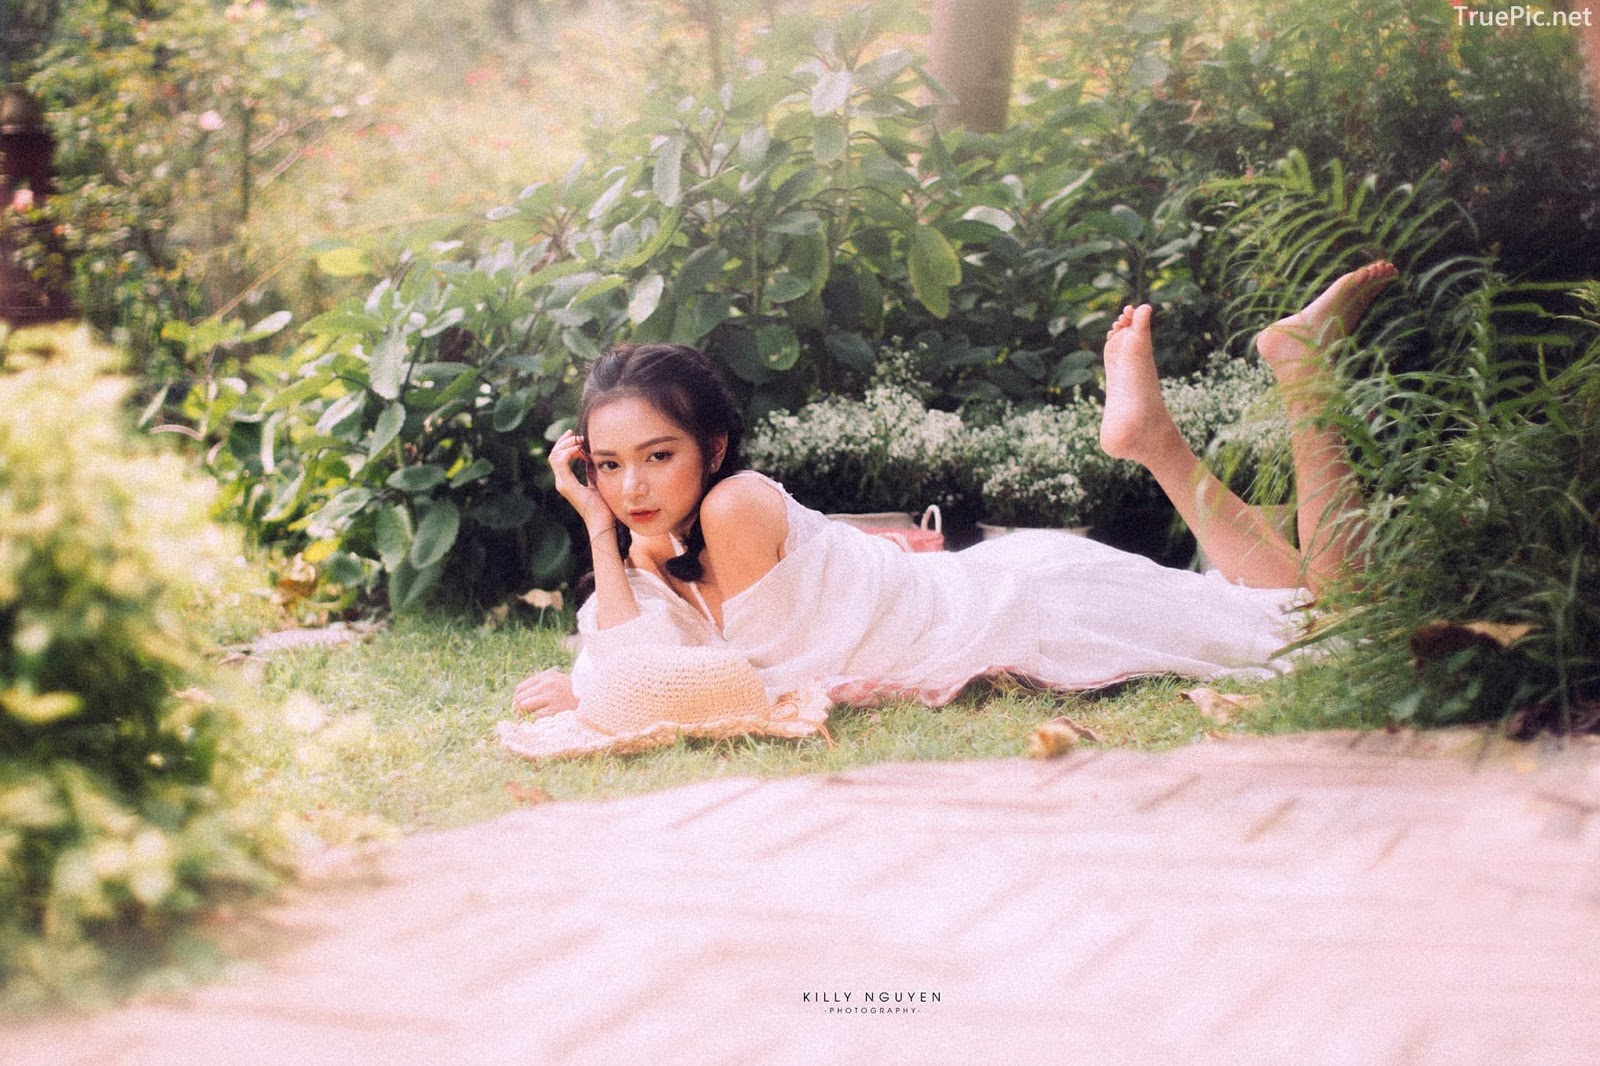 Vietnamese Sexy Model - Vu Ngoc Kim Chi - Beautiful in white - TruePic.net- Picture 42